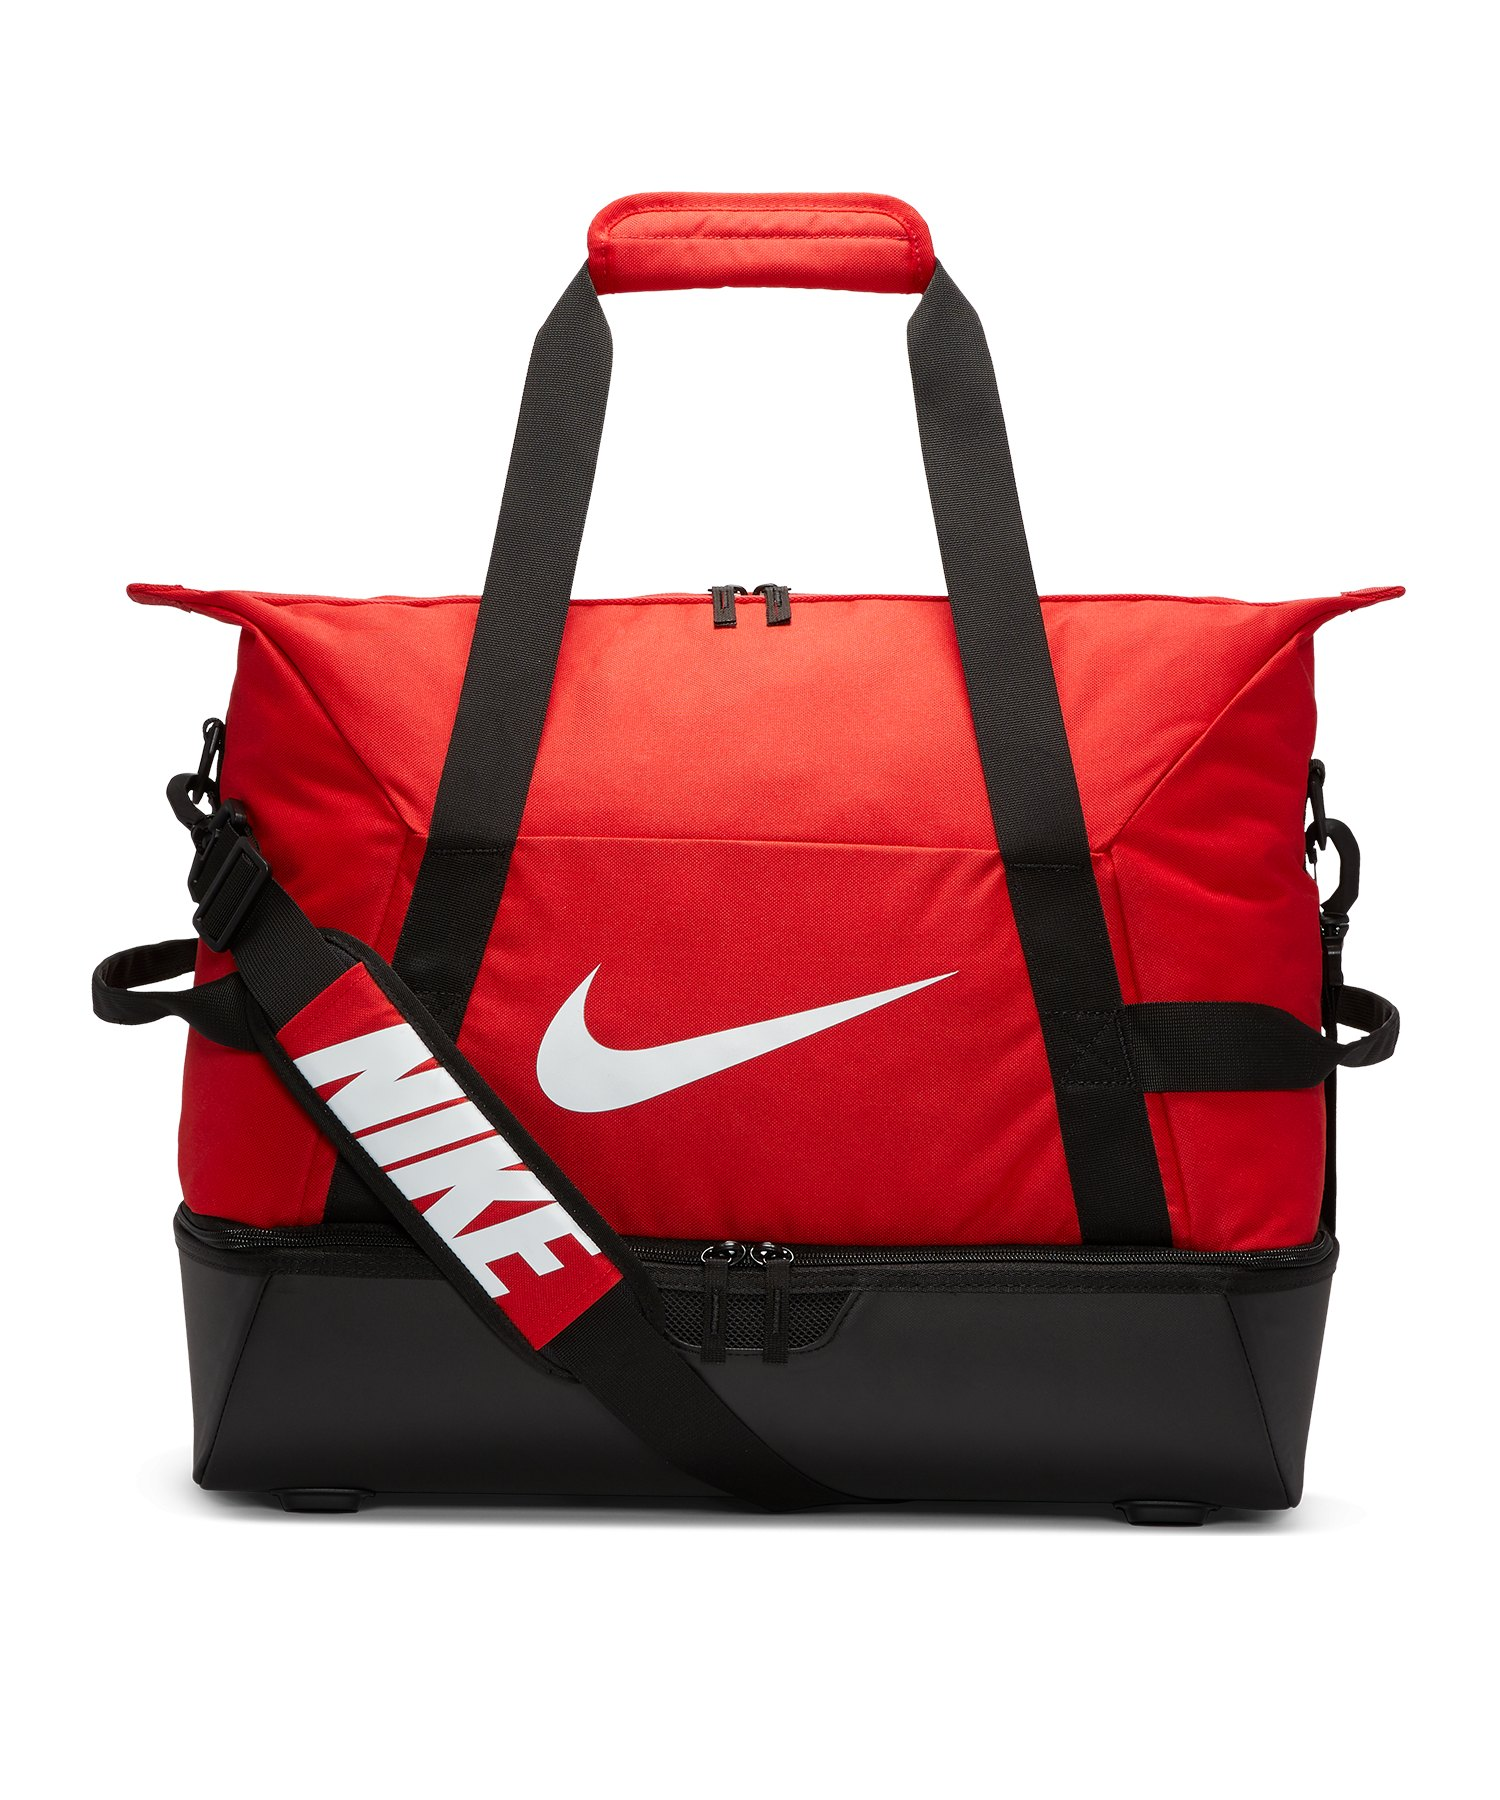 Nike Academy Duffle Tasche Large m.B. Rot F657 - rot